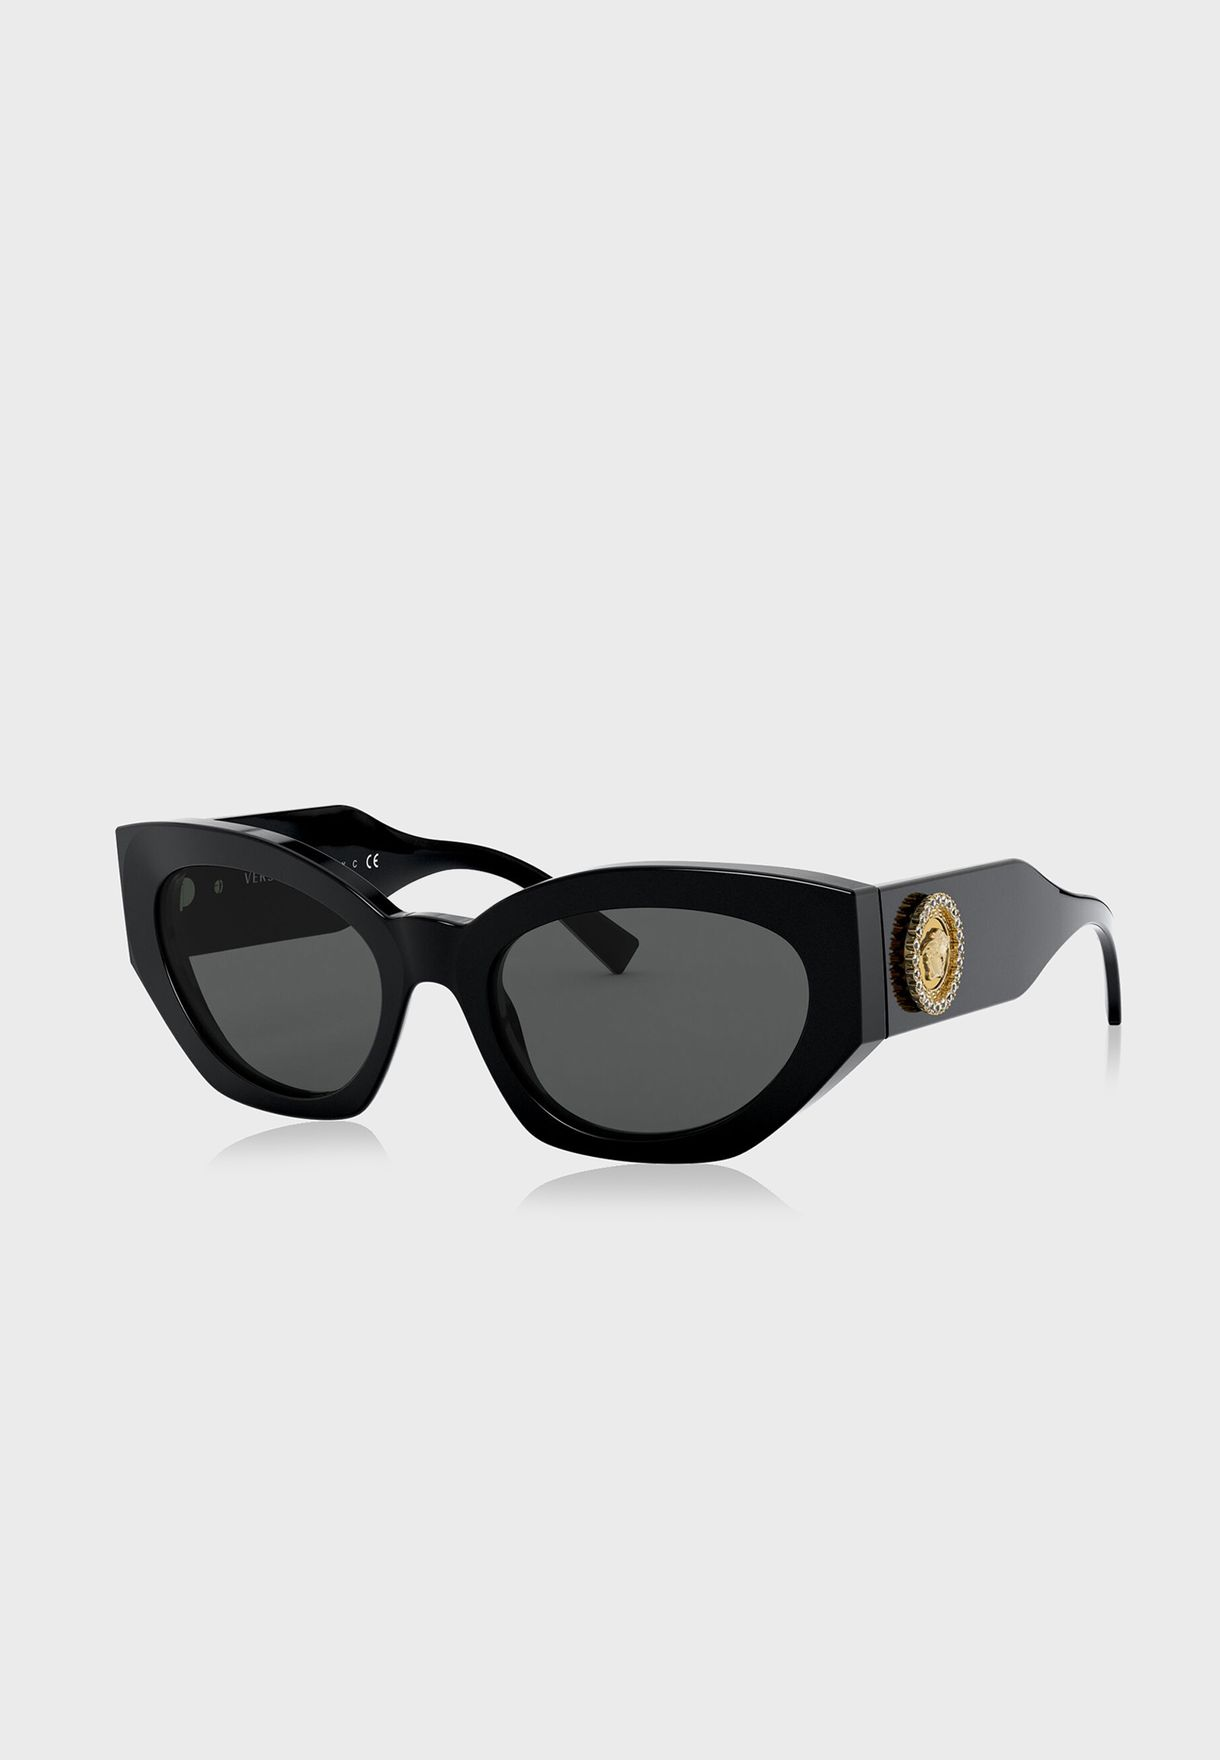 0VE4376B Oval Sunglasses